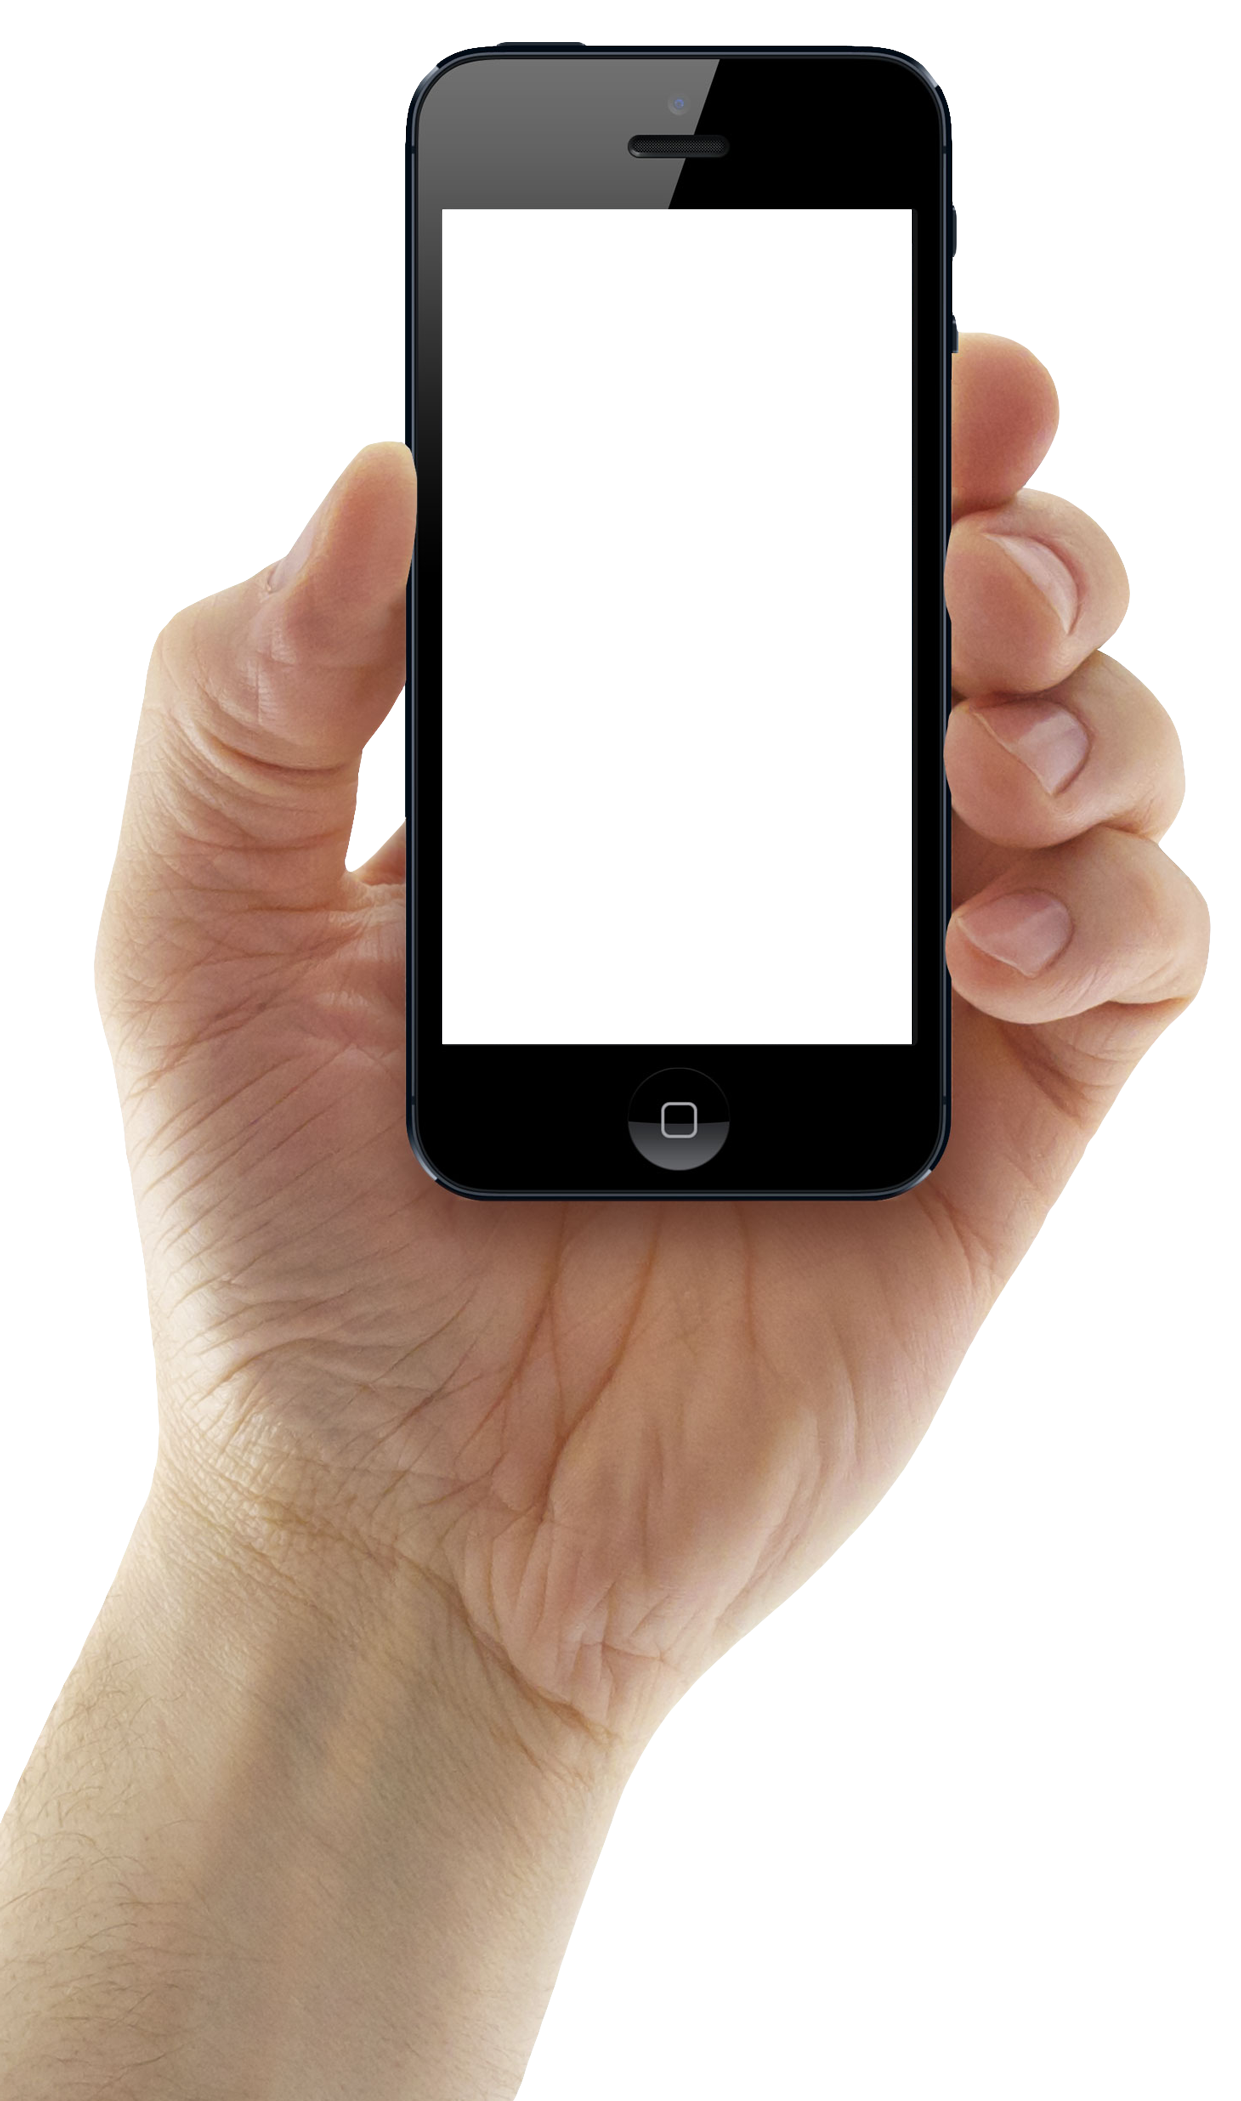 Hand holding png image. Iphone clipart iphone text